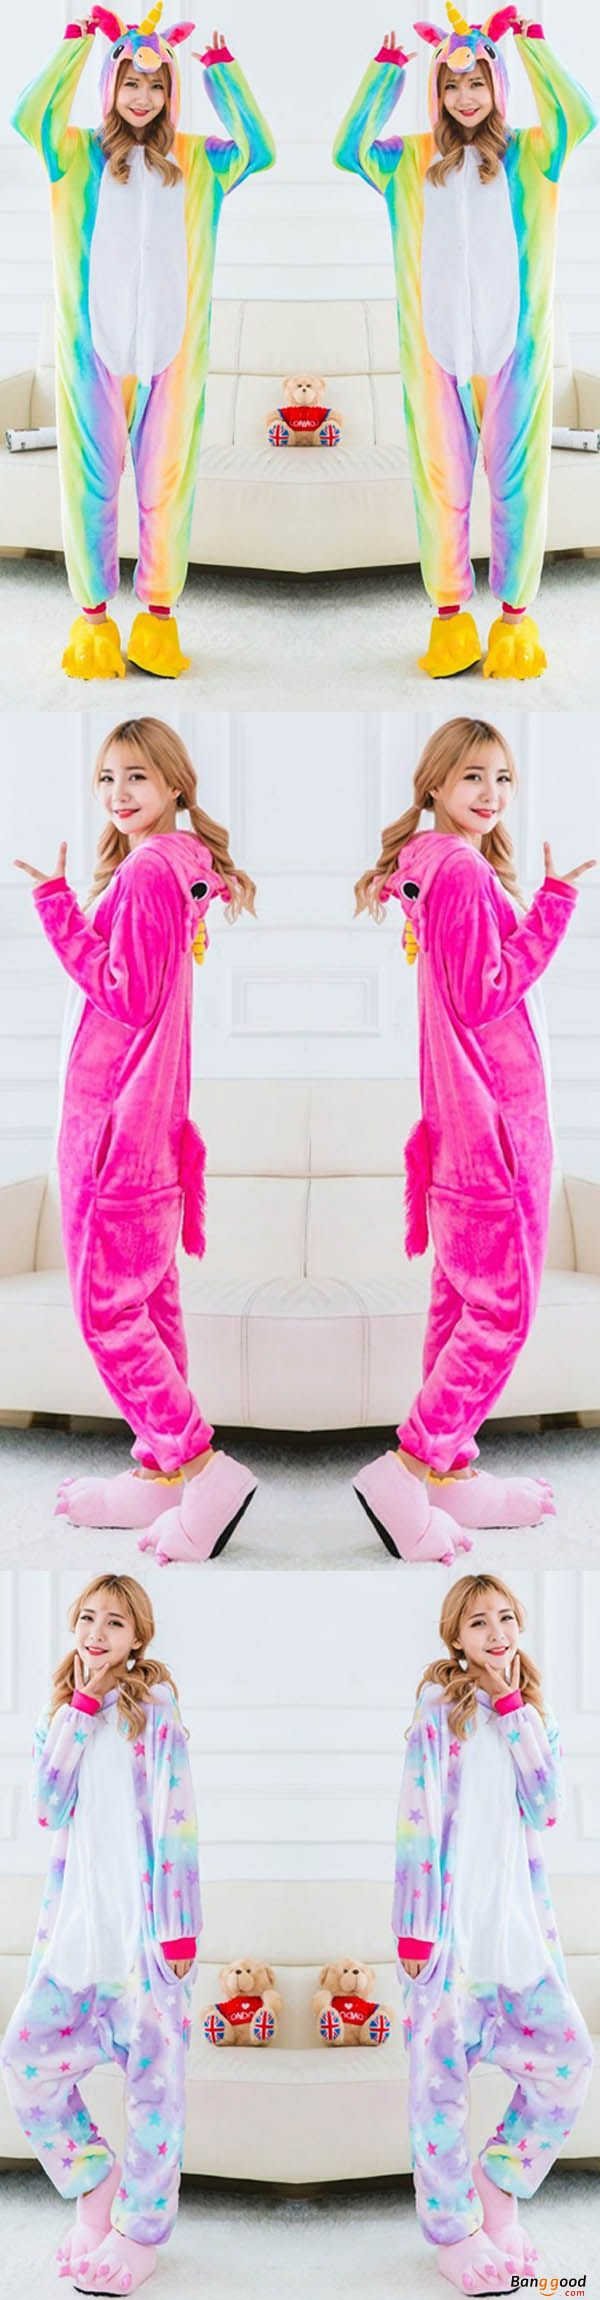 I love those fashionable and stylish sleepwear from banggood.com. Find the most suitable and comfortable Sleepwear & Robes at incredibly low prices here.